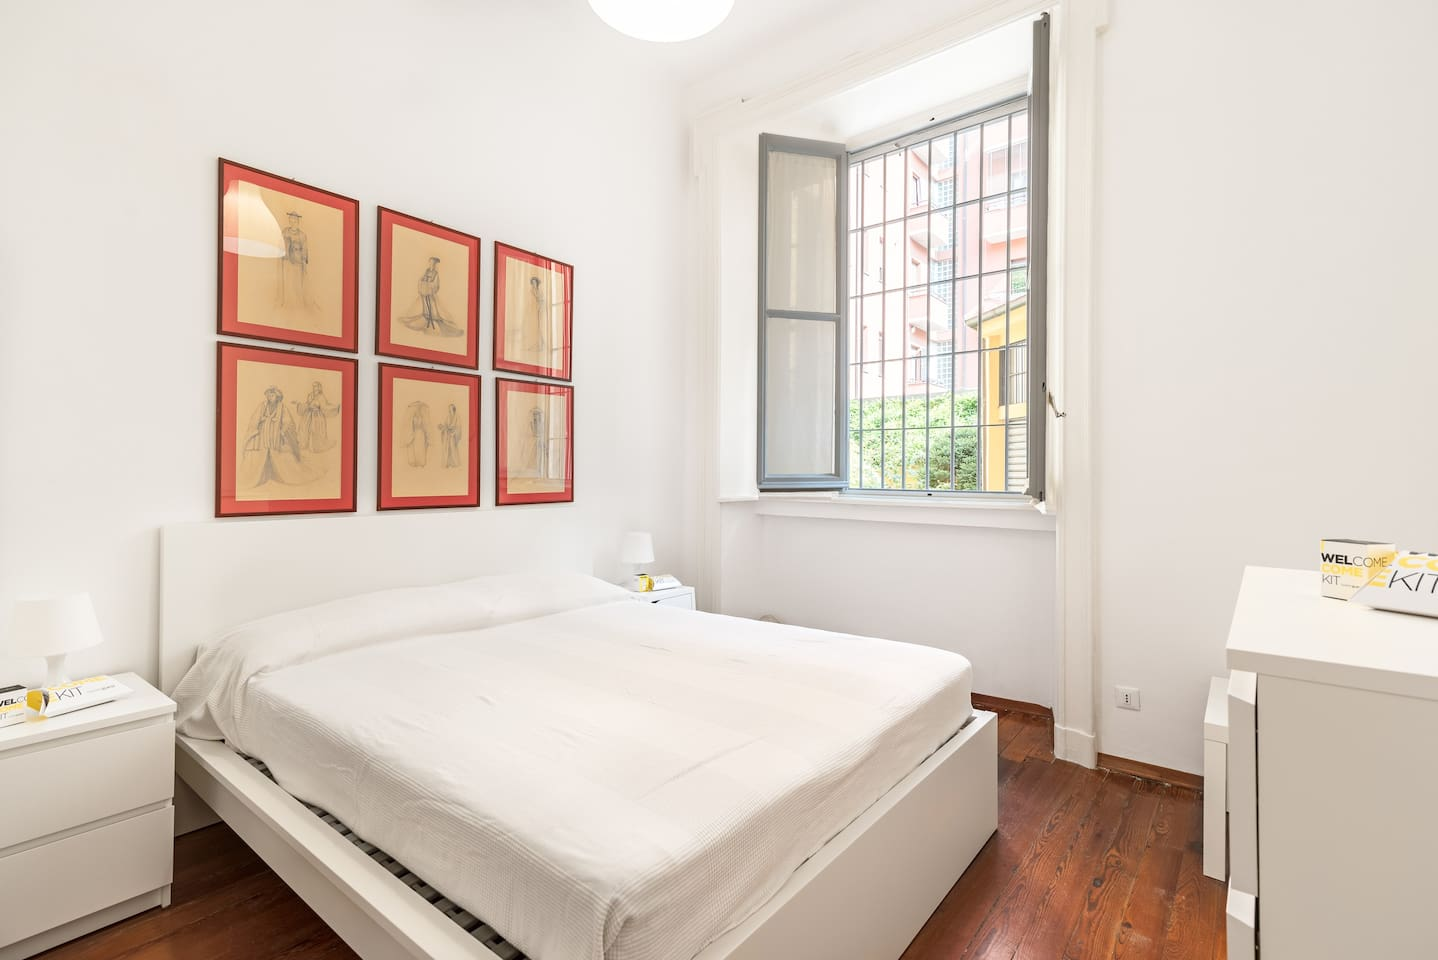 The second Bedroom with the comfortable double bed & The bright window